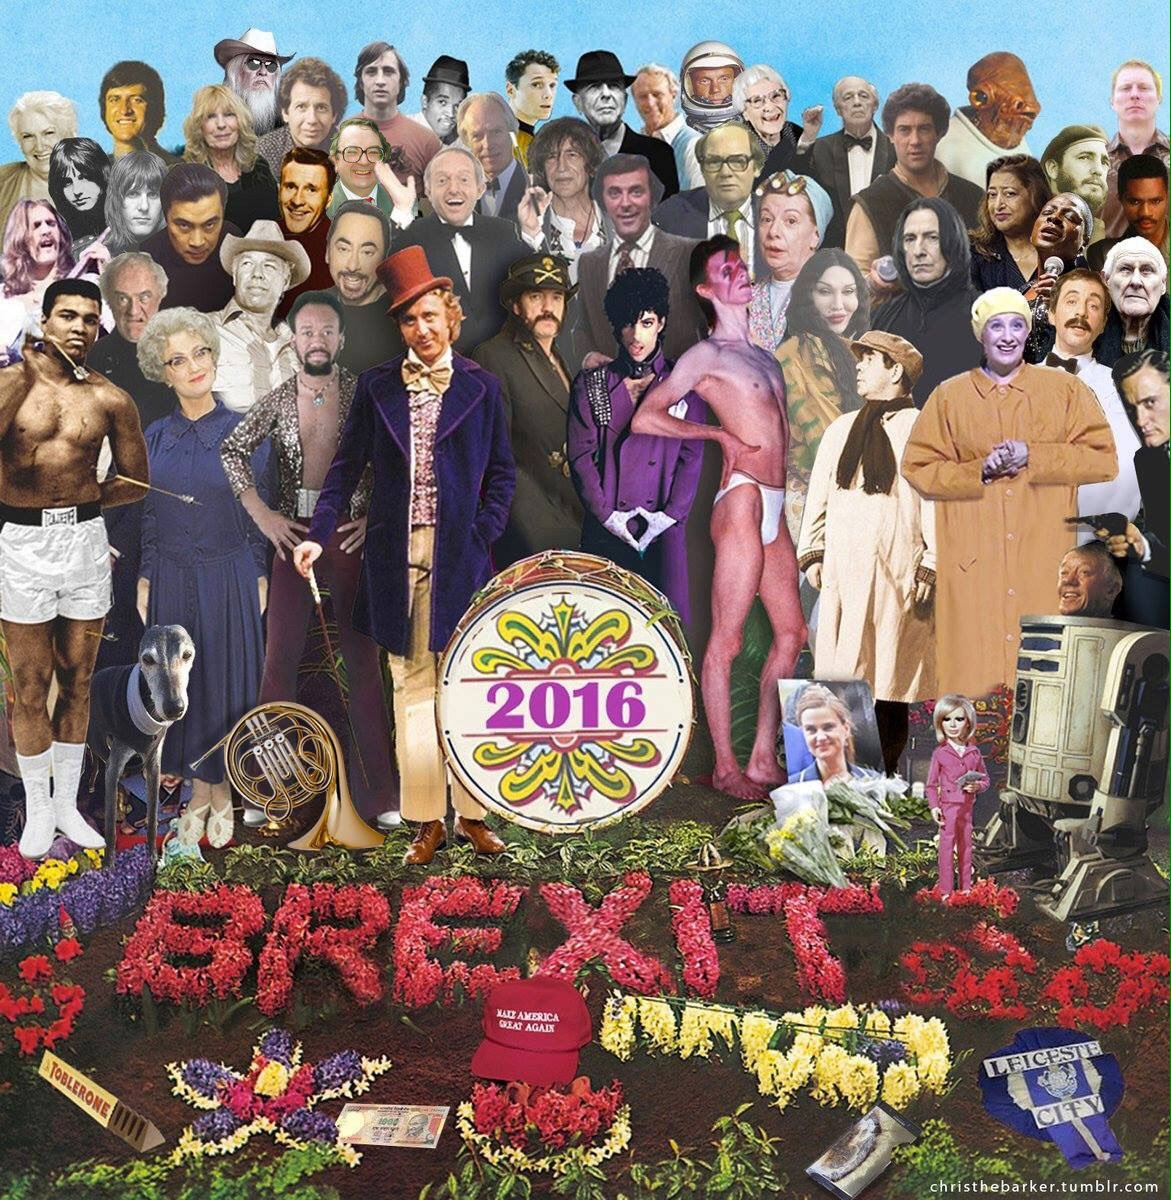 La versión 2016 de 'Sgt. Pepper's Lonely Hearts Club Band' - Christhebarker